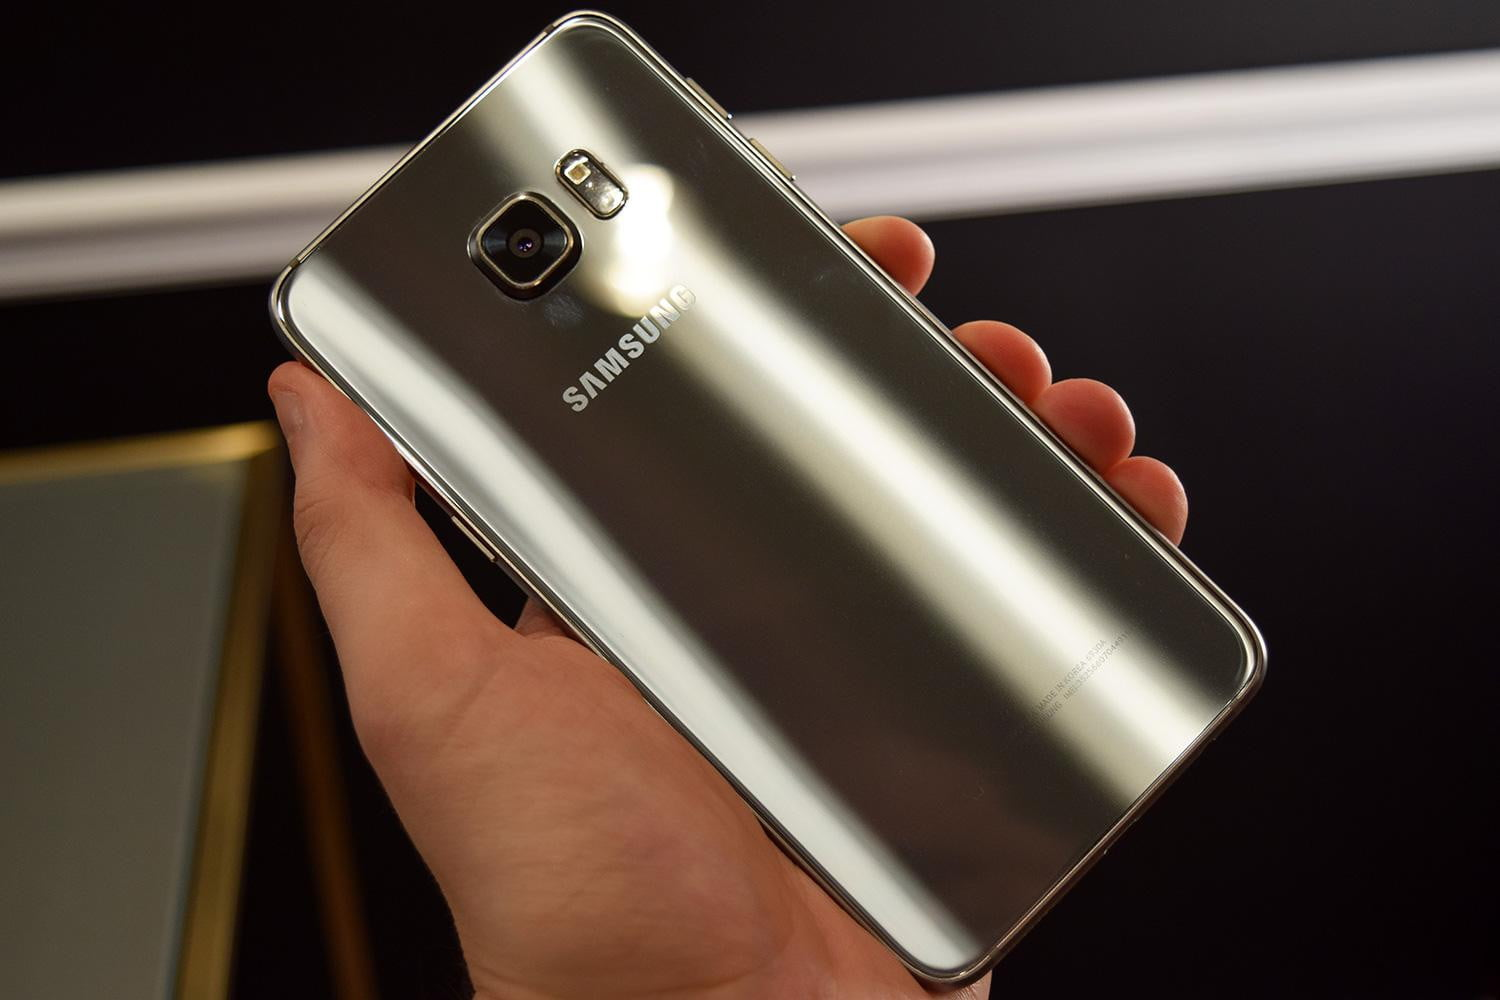 samsung galaxy s6 edge plus hands on review digital trends. Black Bedroom Furniture Sets. Home Design Ideas